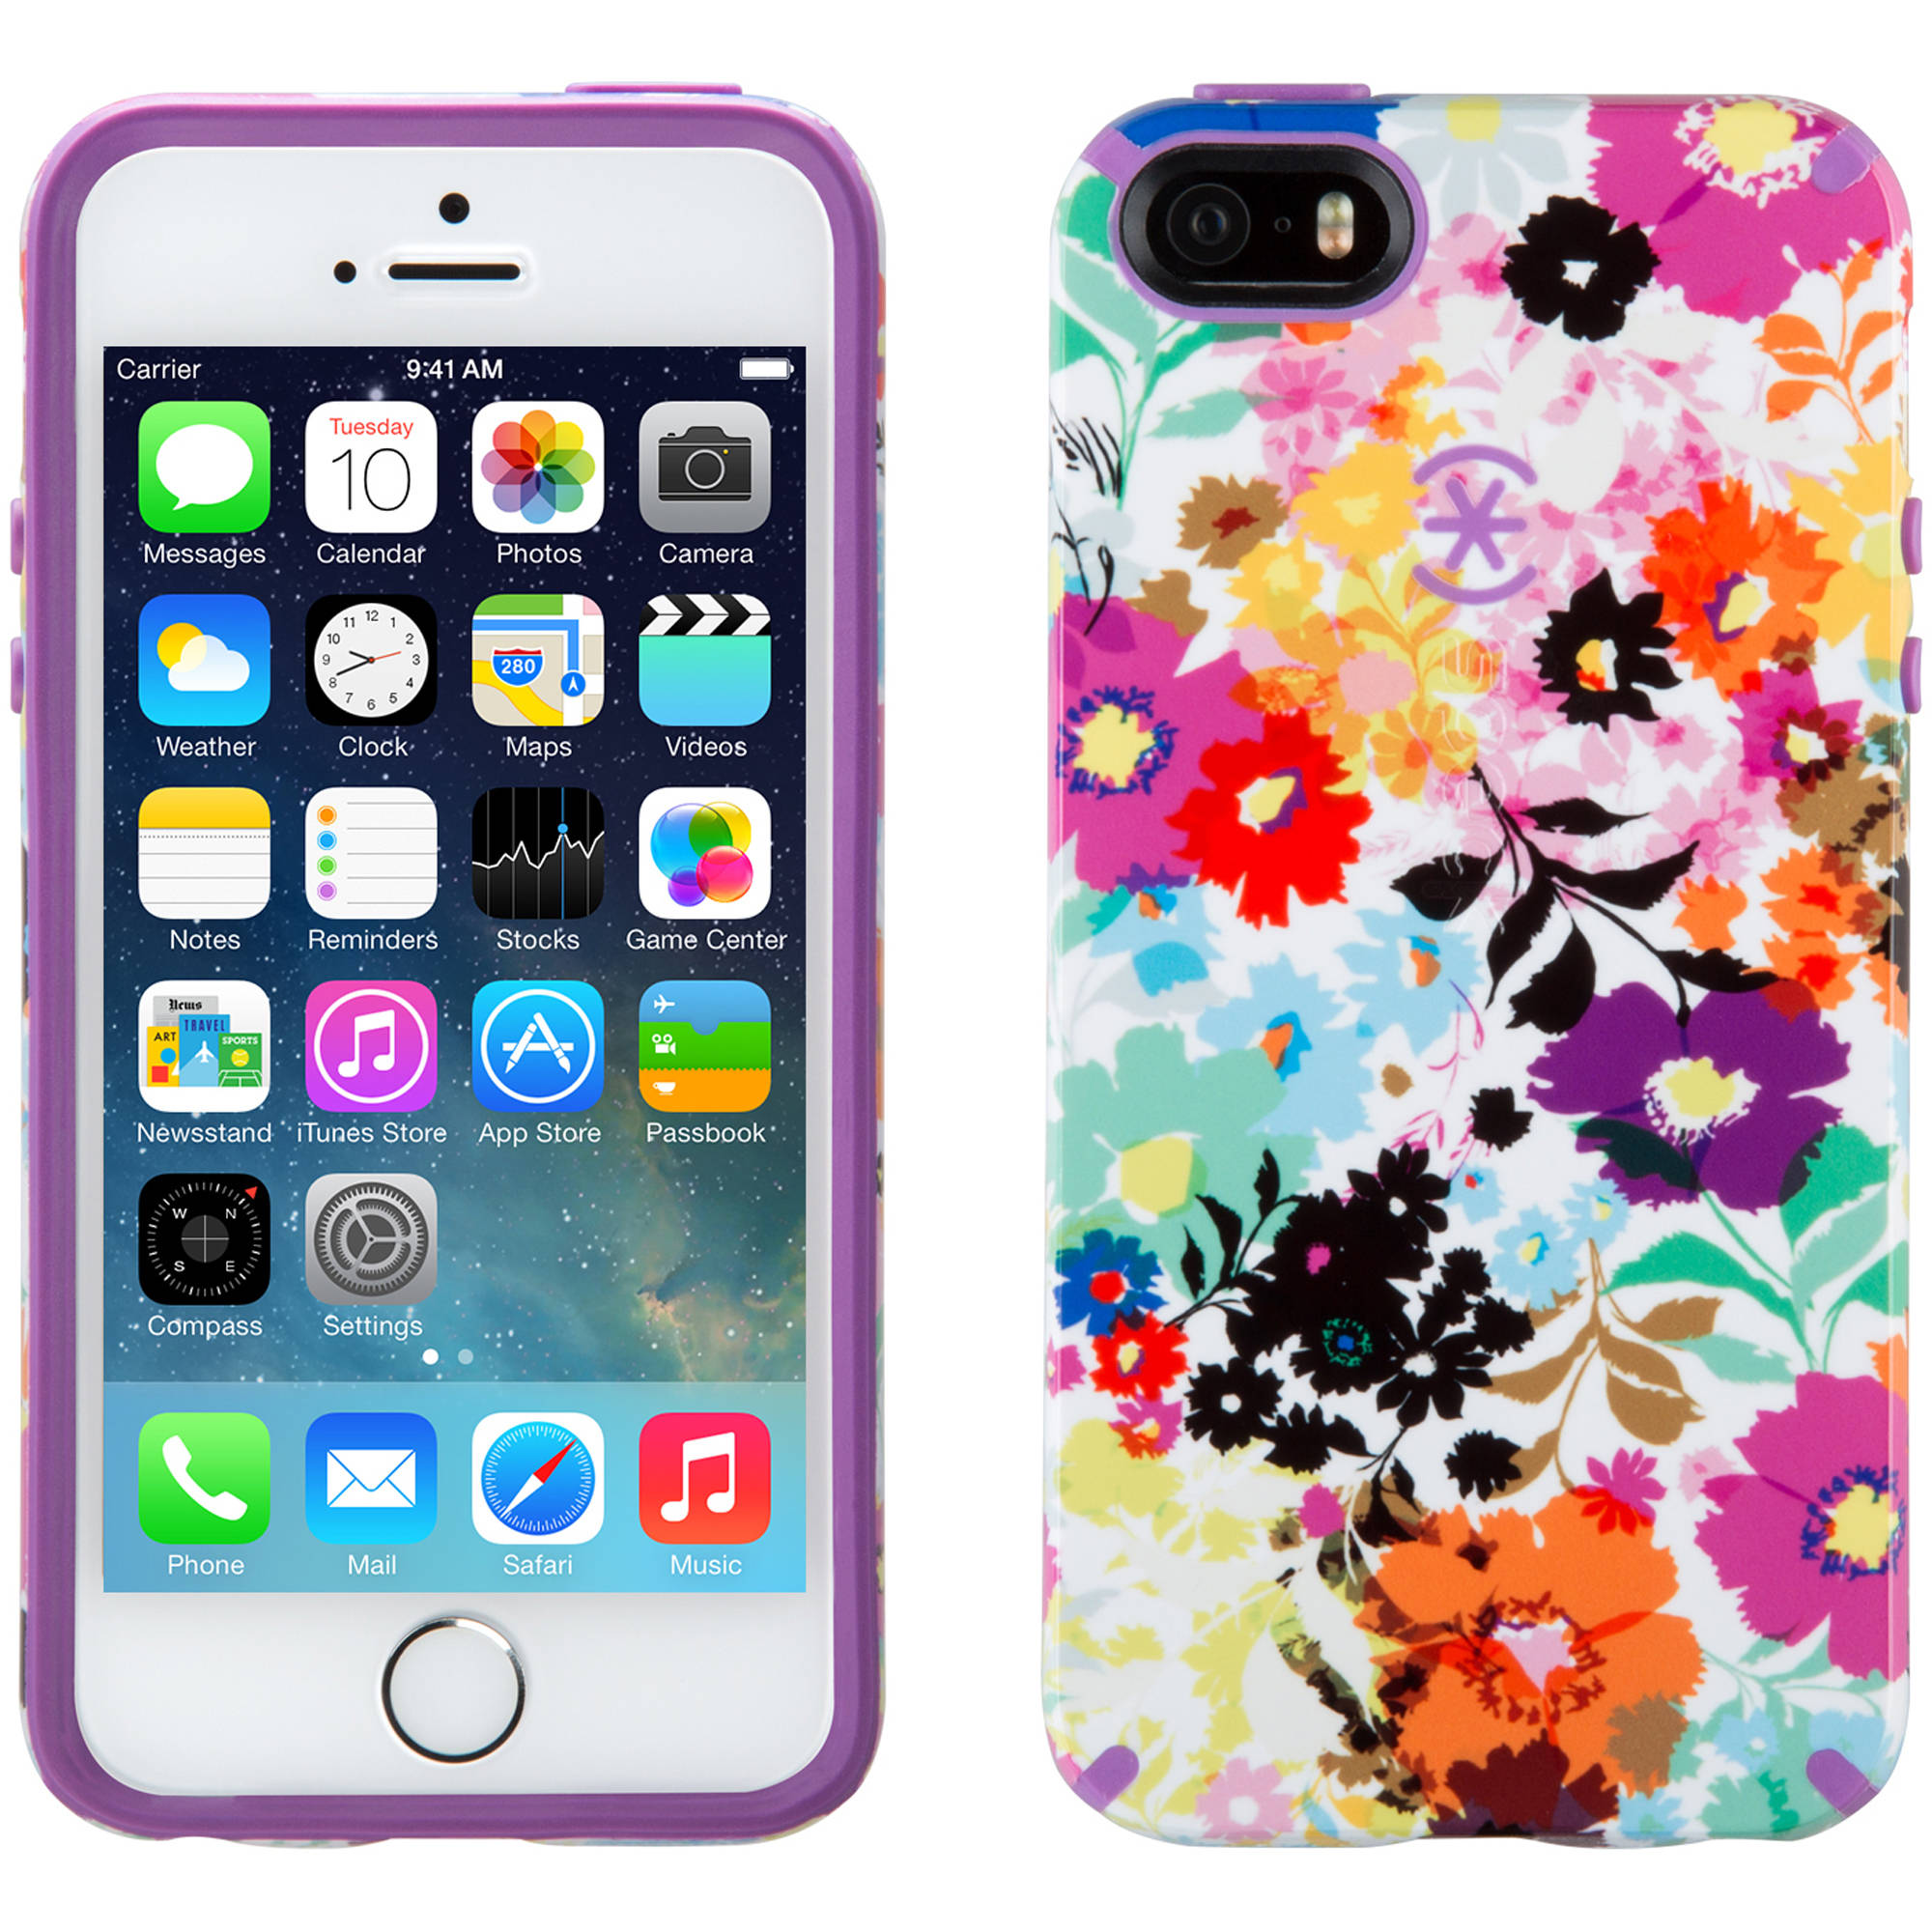 iPhone 5/5SE/5S Speck spk-a2752 apple iphone candyshell inked case